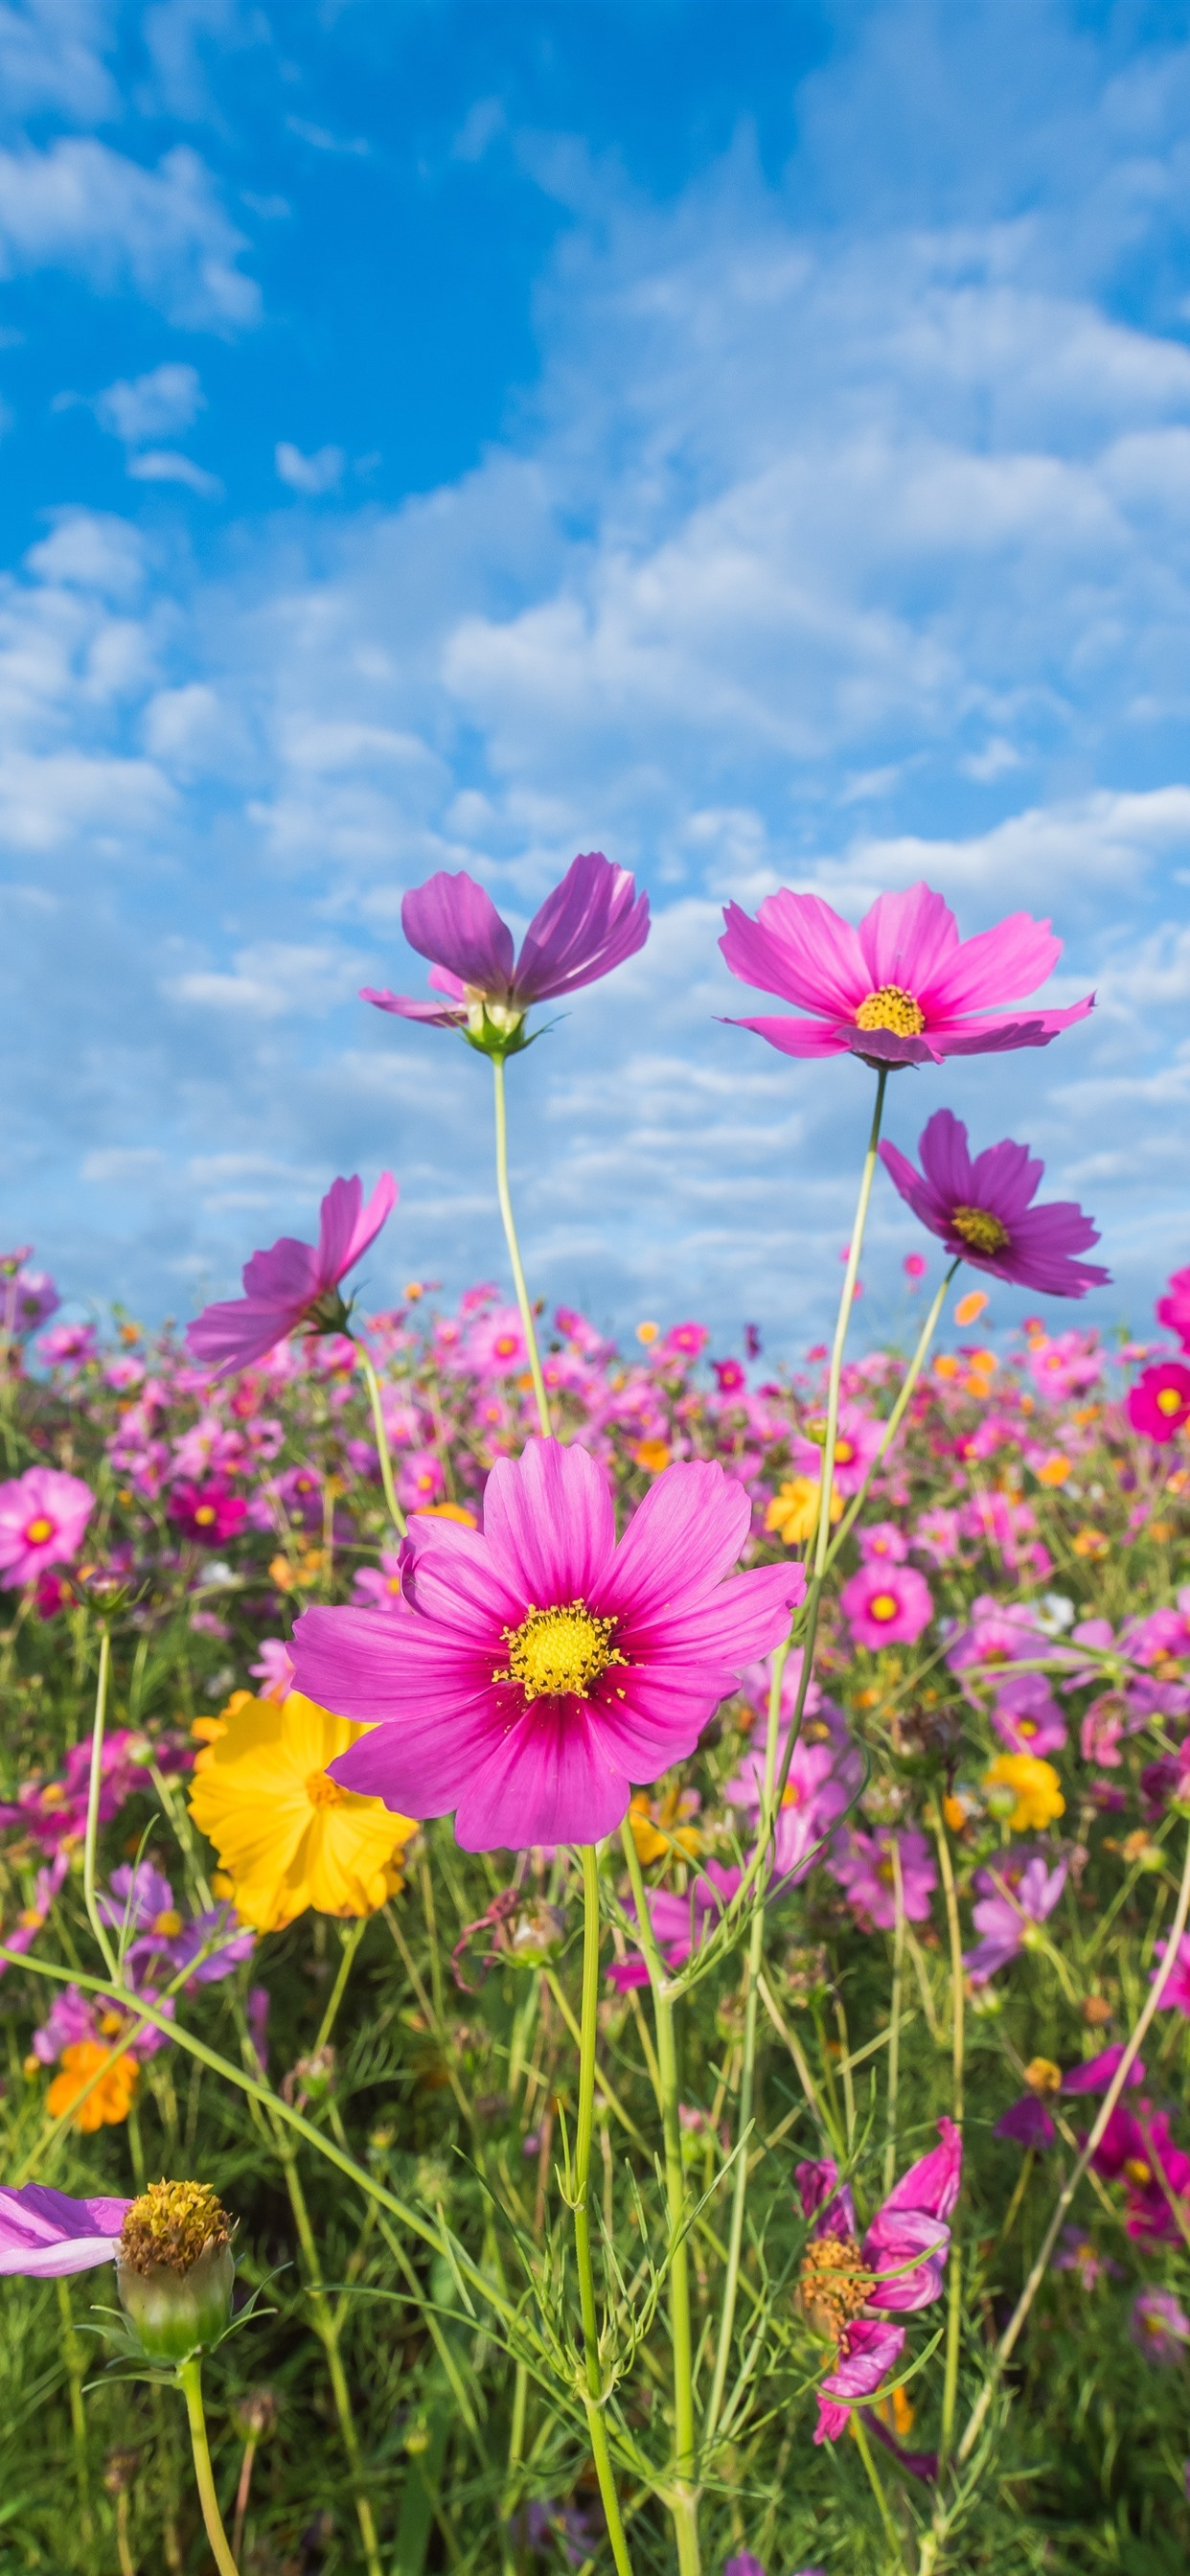 Pink Flowers Cosmos Meadow Summer 1242x2688 Iphone Xs Max